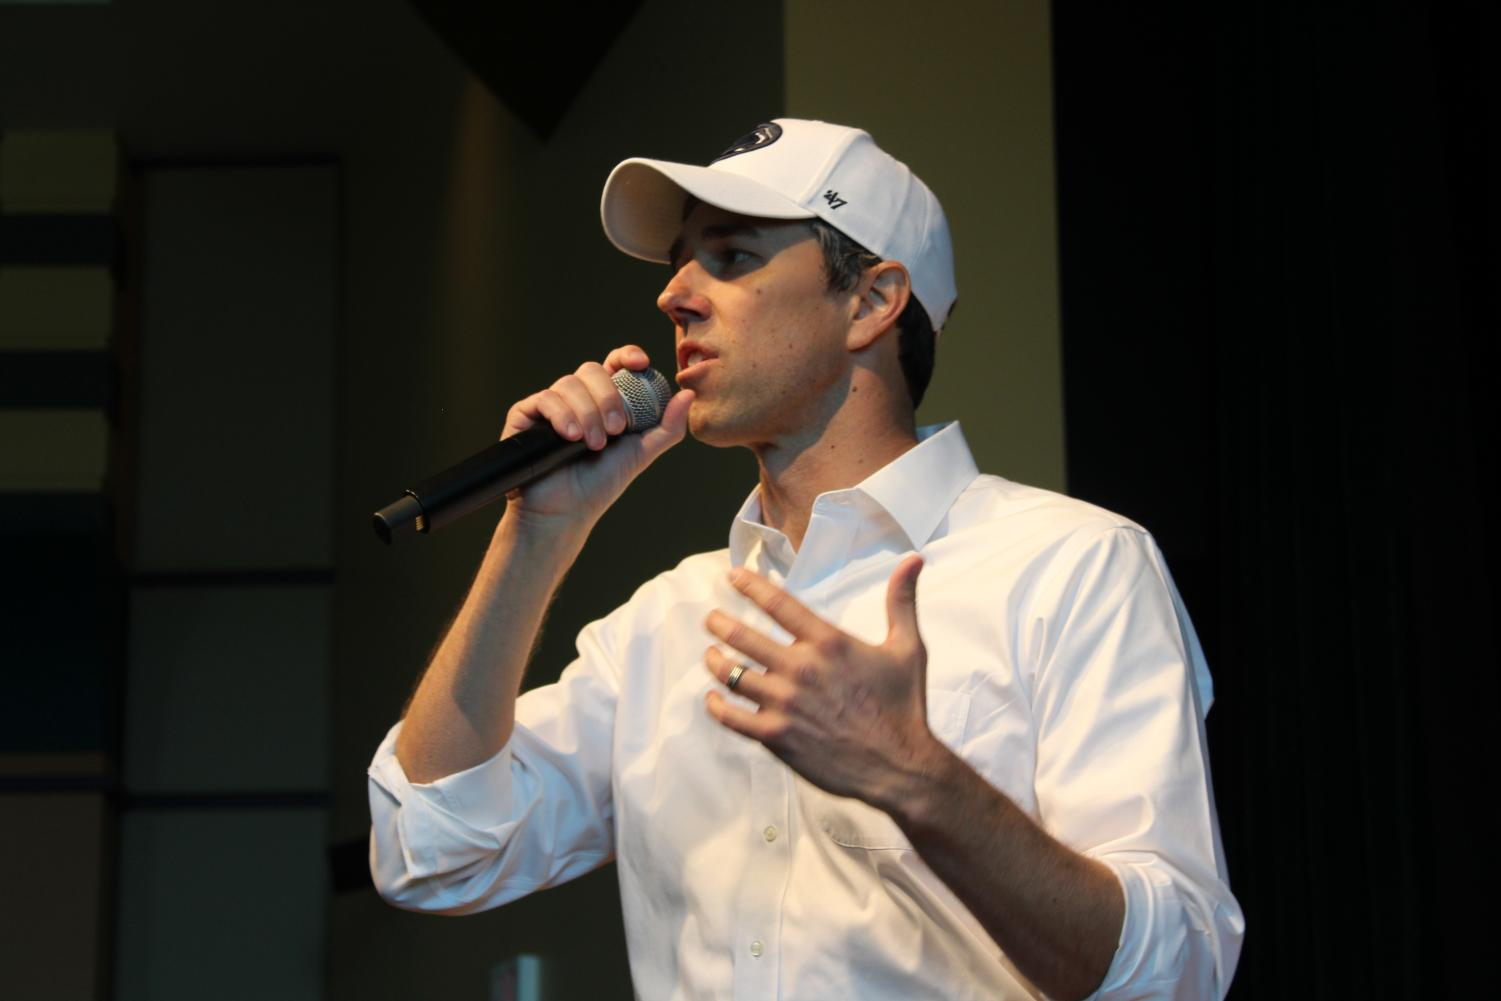 """Democratic Presidential Candidate Beto O'Rourke visits Penn State University to host a campaign rally. """"As long as these conditions persist, as long as we do these kinds of things to our fellow human beings, it is on all of us,"""" O'Rourke said. Listeners were eager to hear from the candidate on his policies, which are not listed on his website."""